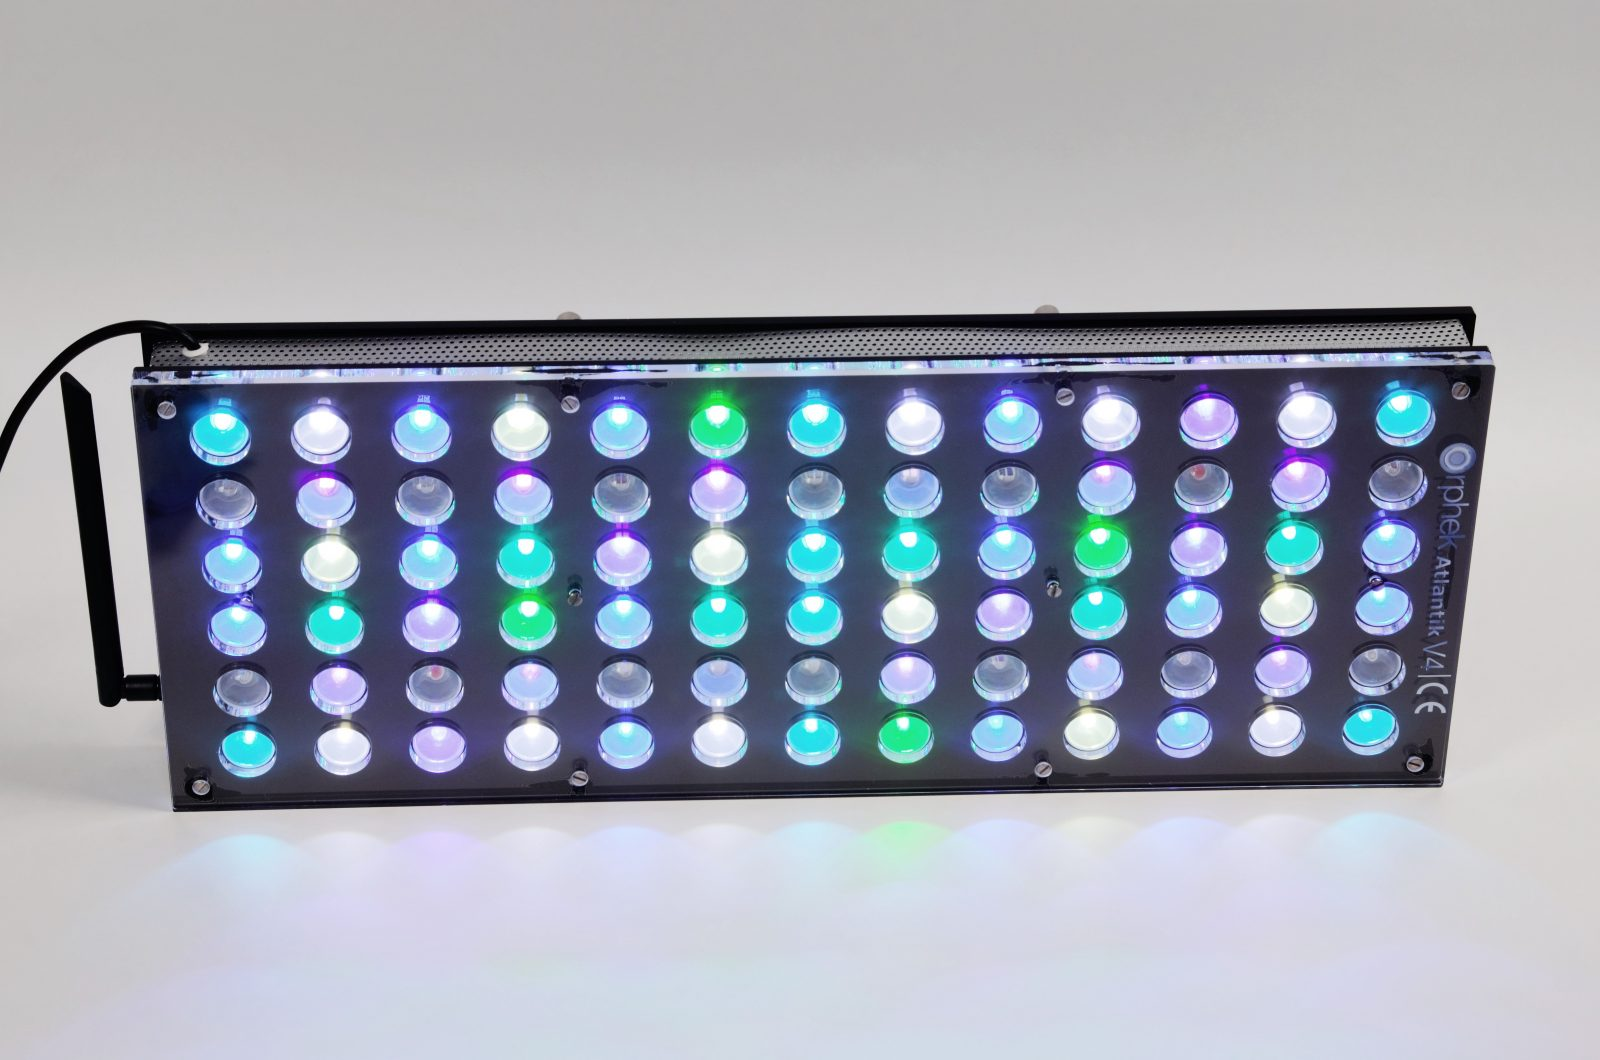 Orphek-Aquarium-LED-Lighting-Reef-Atlantik-V4-light-on-channel 1 + 2 + 3